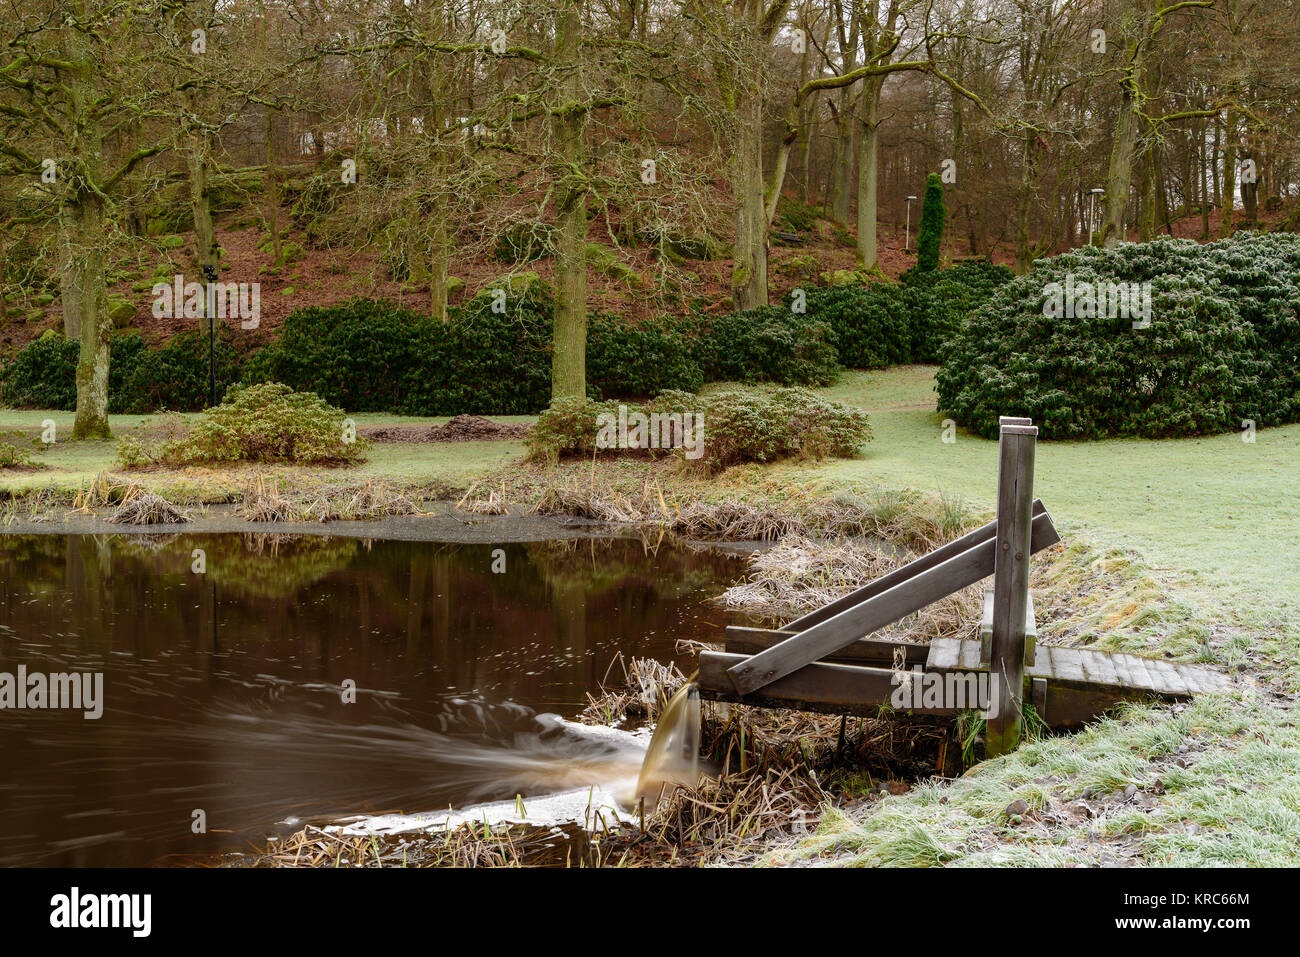 Wooden Waterfall Pouring Water Into Pond In Public Park Woodland